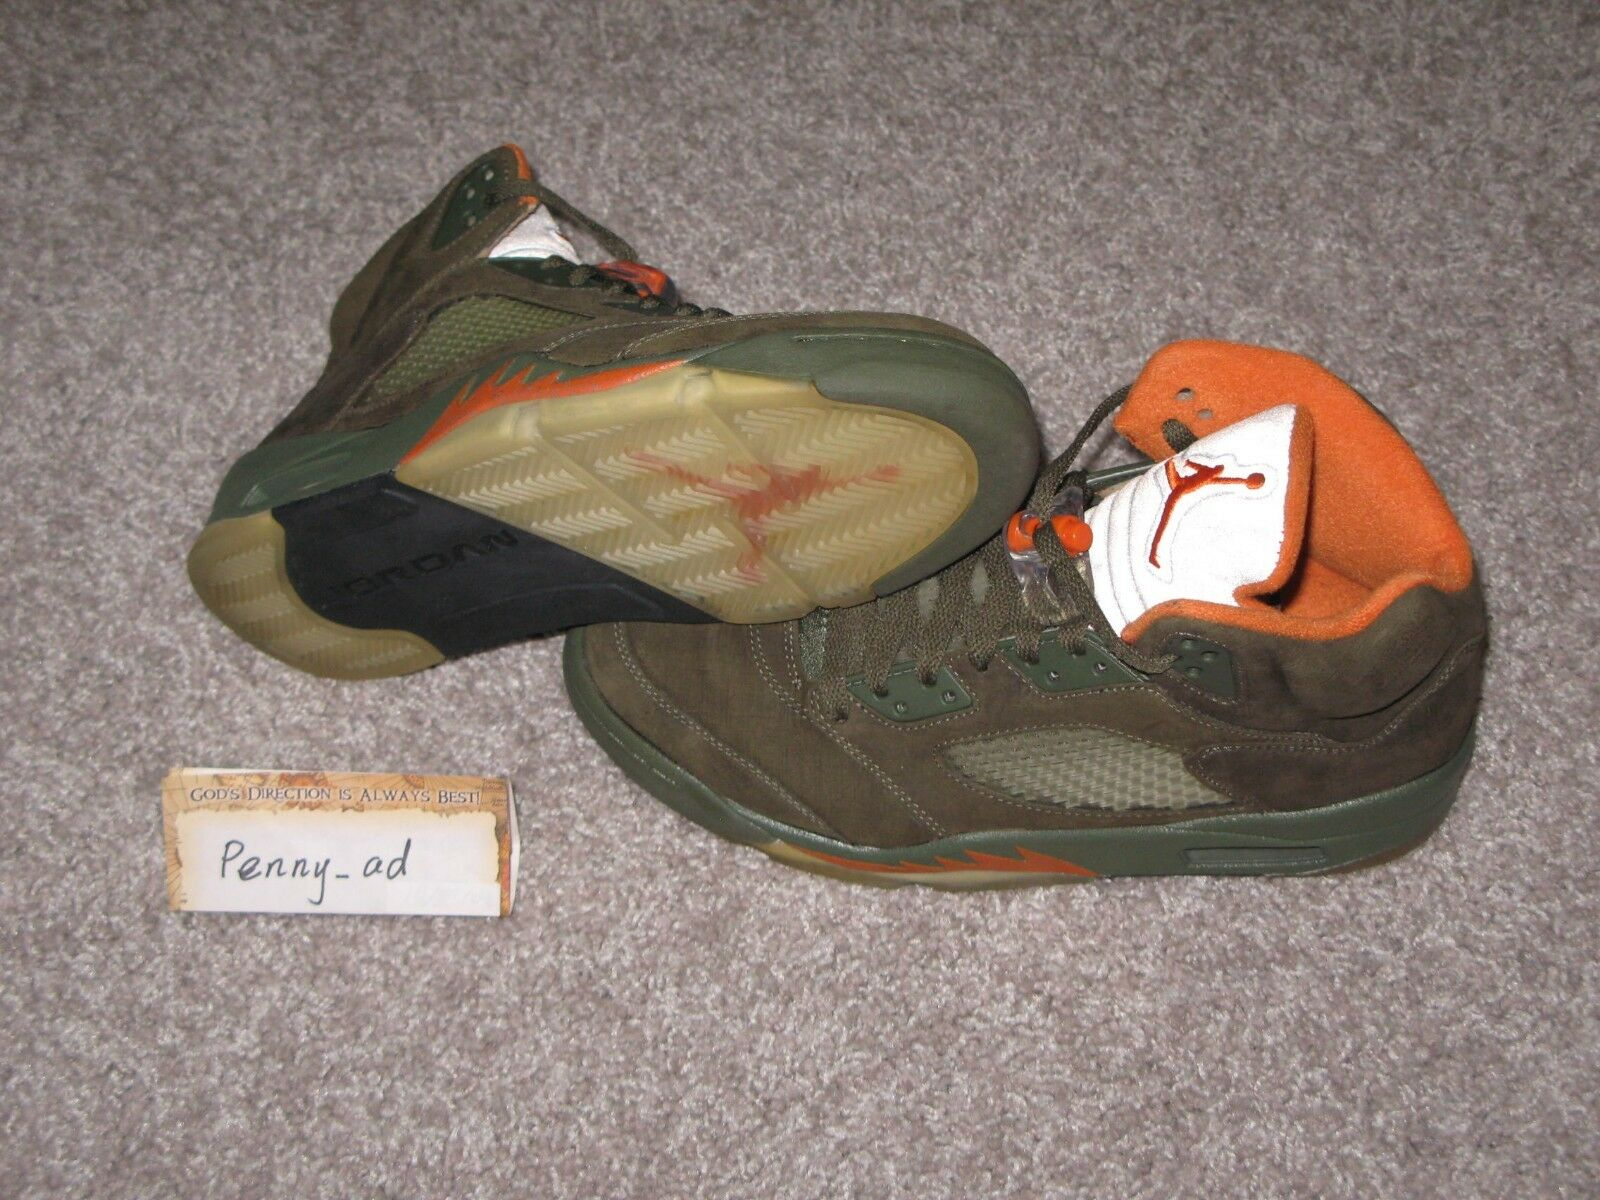 2006 Air Jordan V 5 Retro UNDFTD Dimensione 9.5 Olive Olive Olive Undefeated Bin Fear 4dbd27